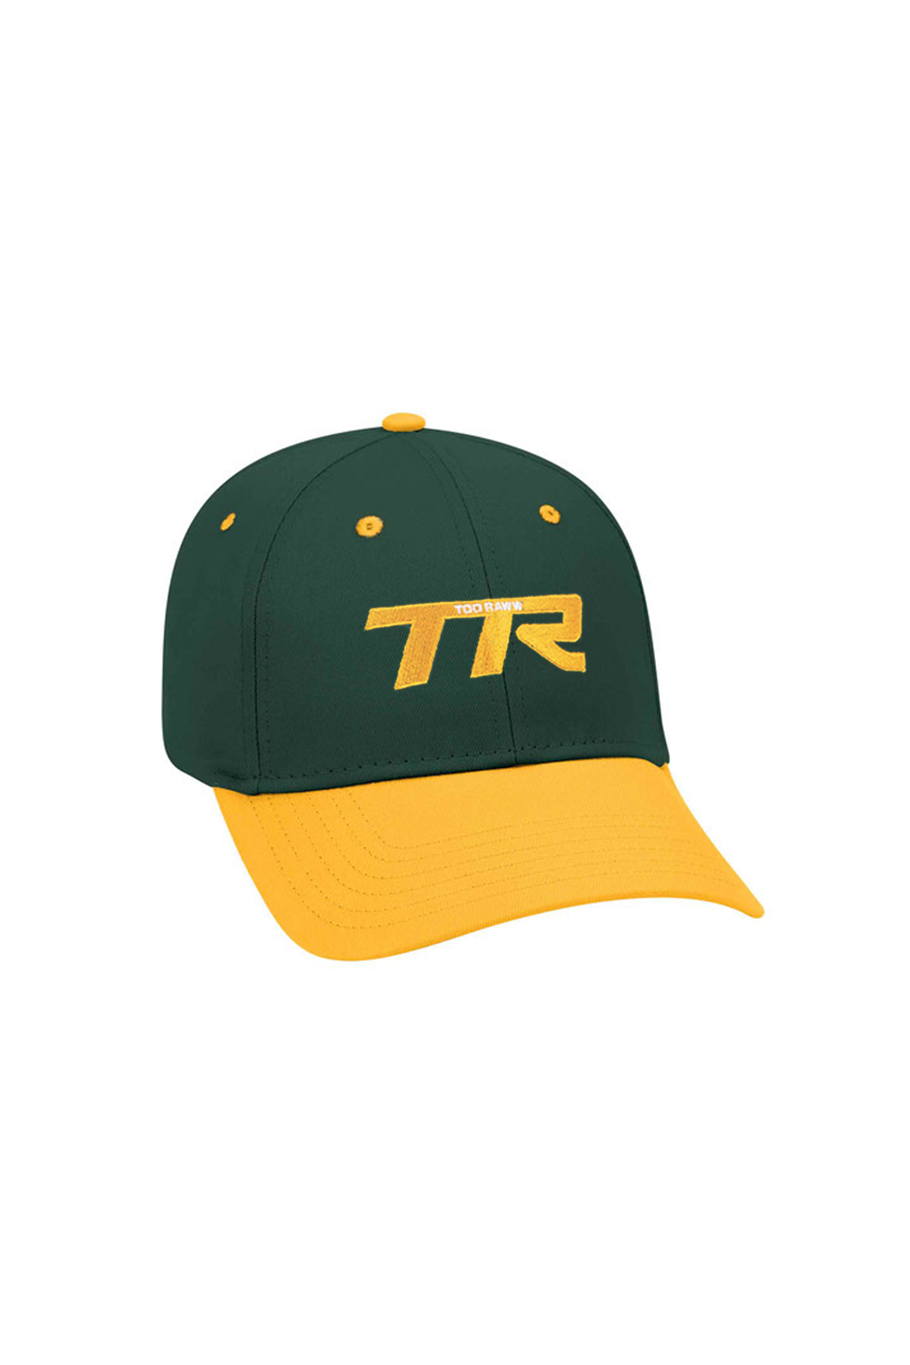 Raww Logo Hat  - Green/Yellow